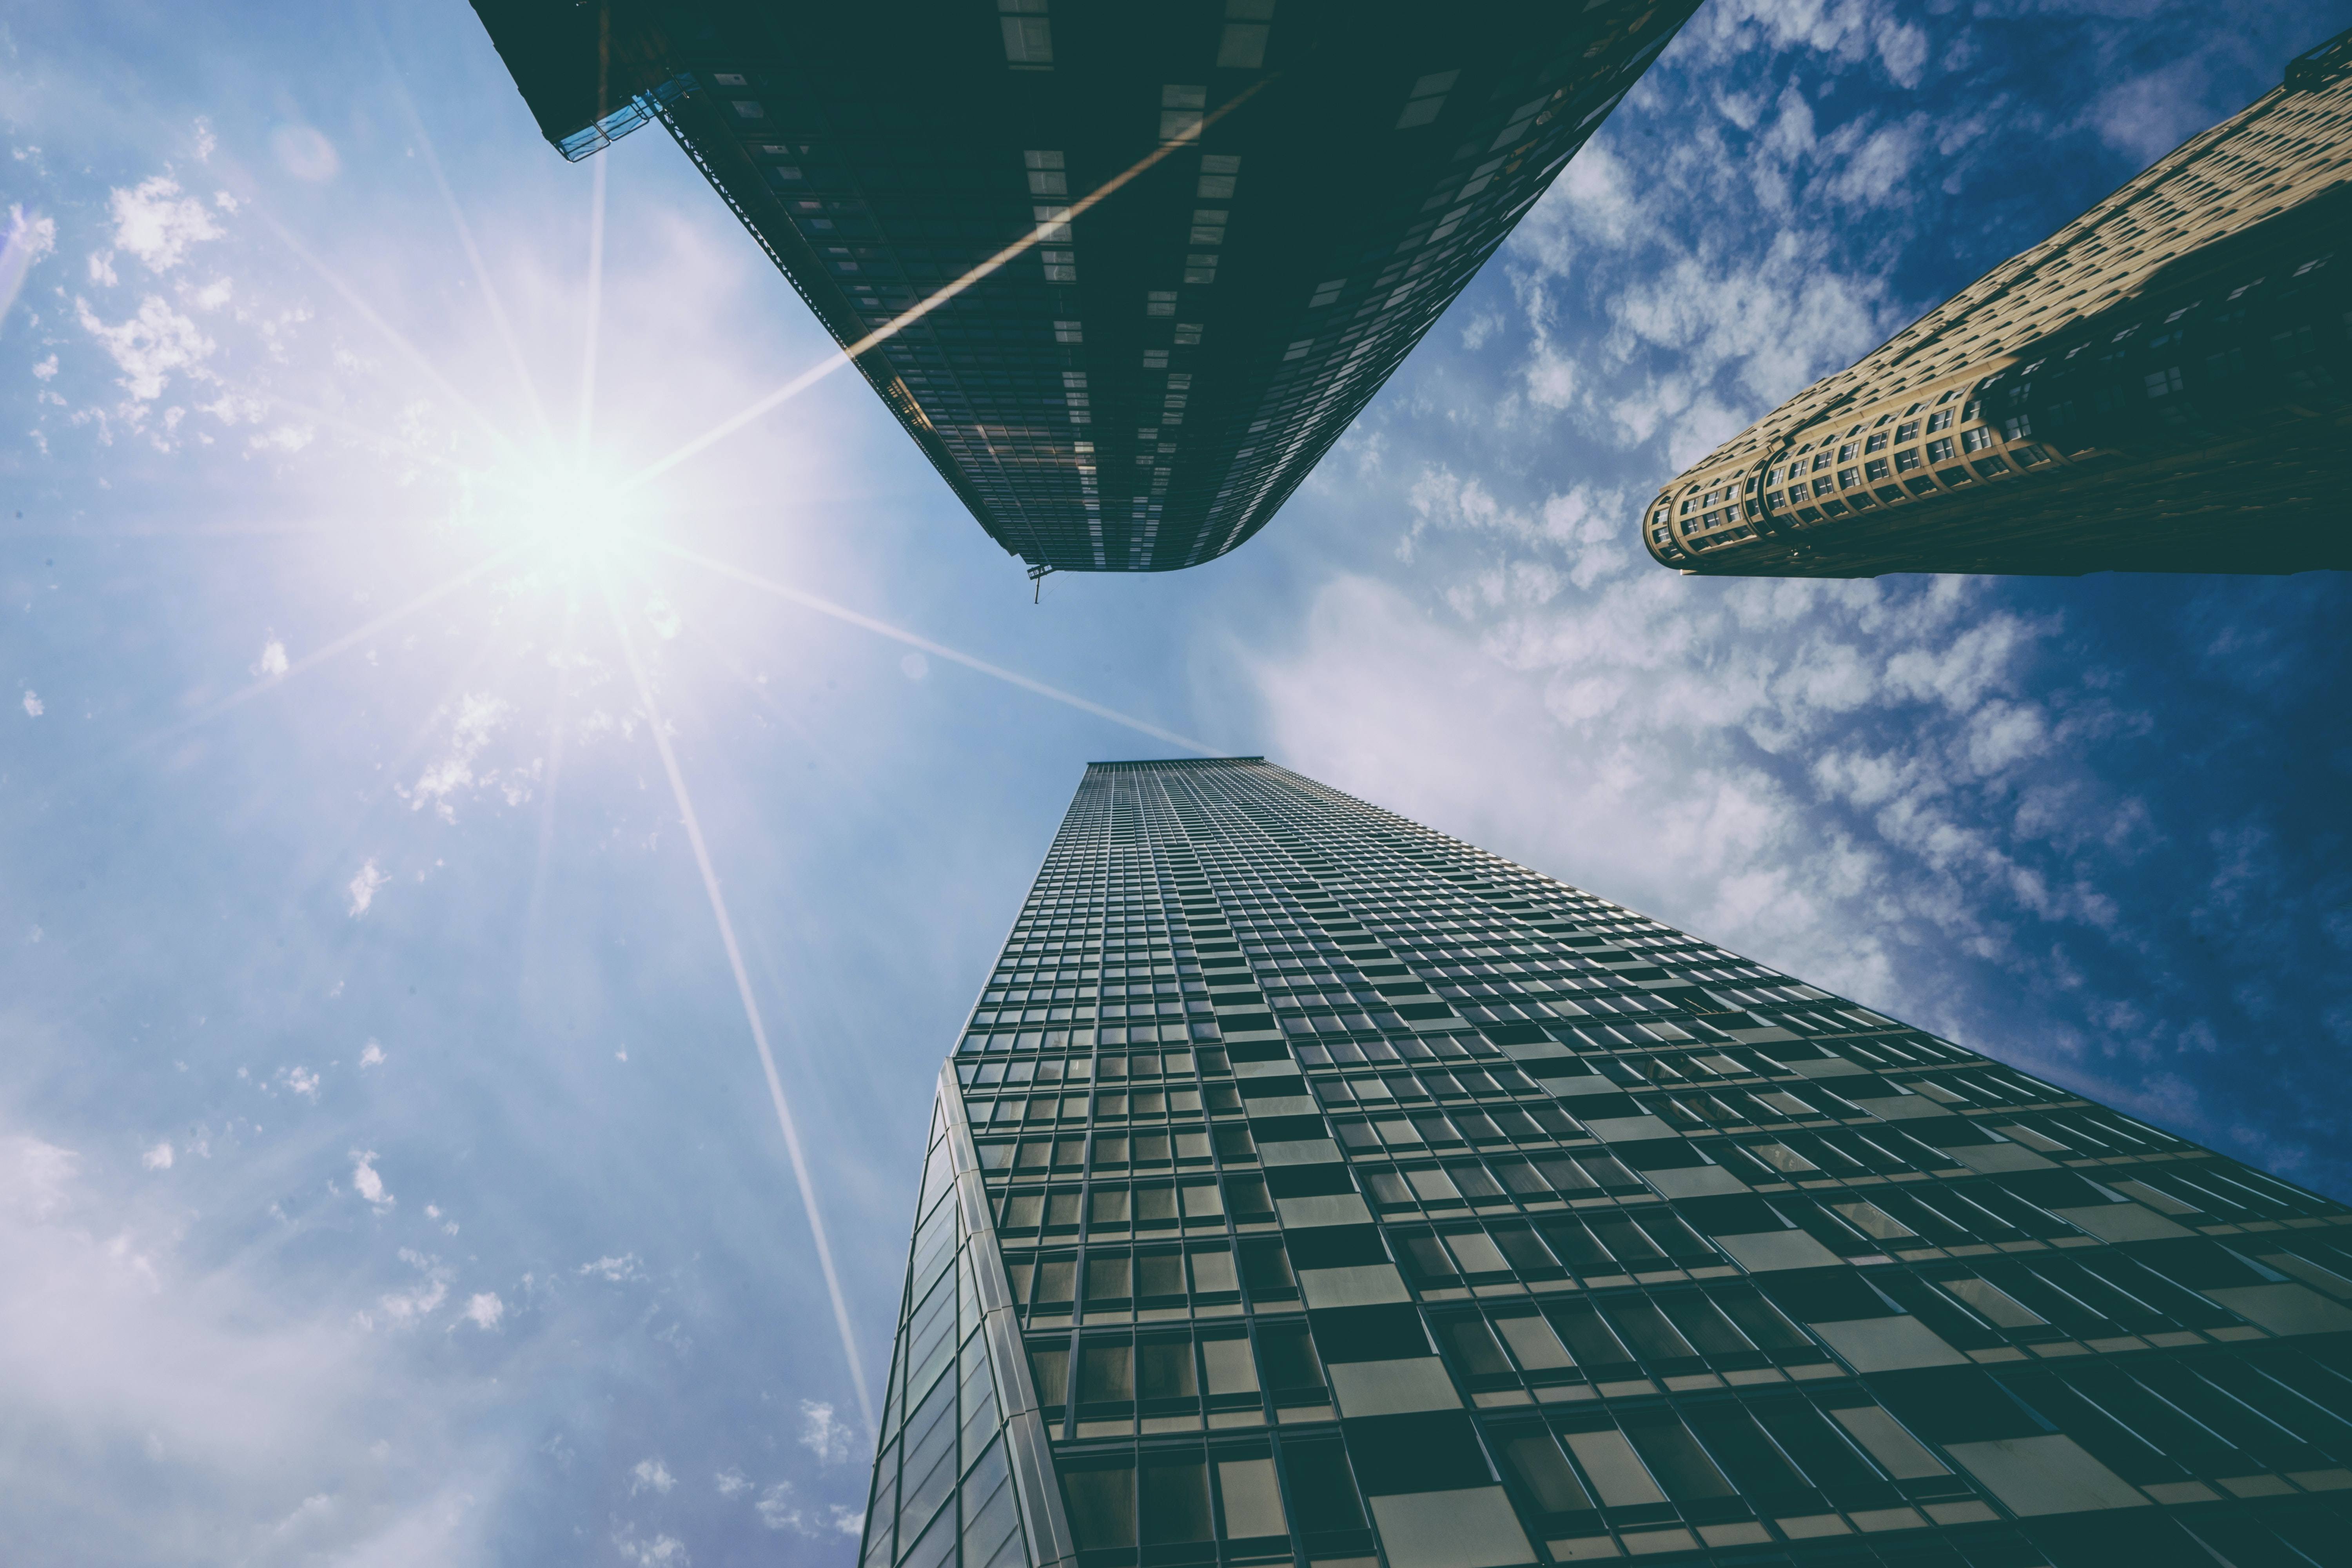 Low Angle Photography Of Building Free Stock Photo: Low-angle Photography Of High-rise Building · Free Stock Photo